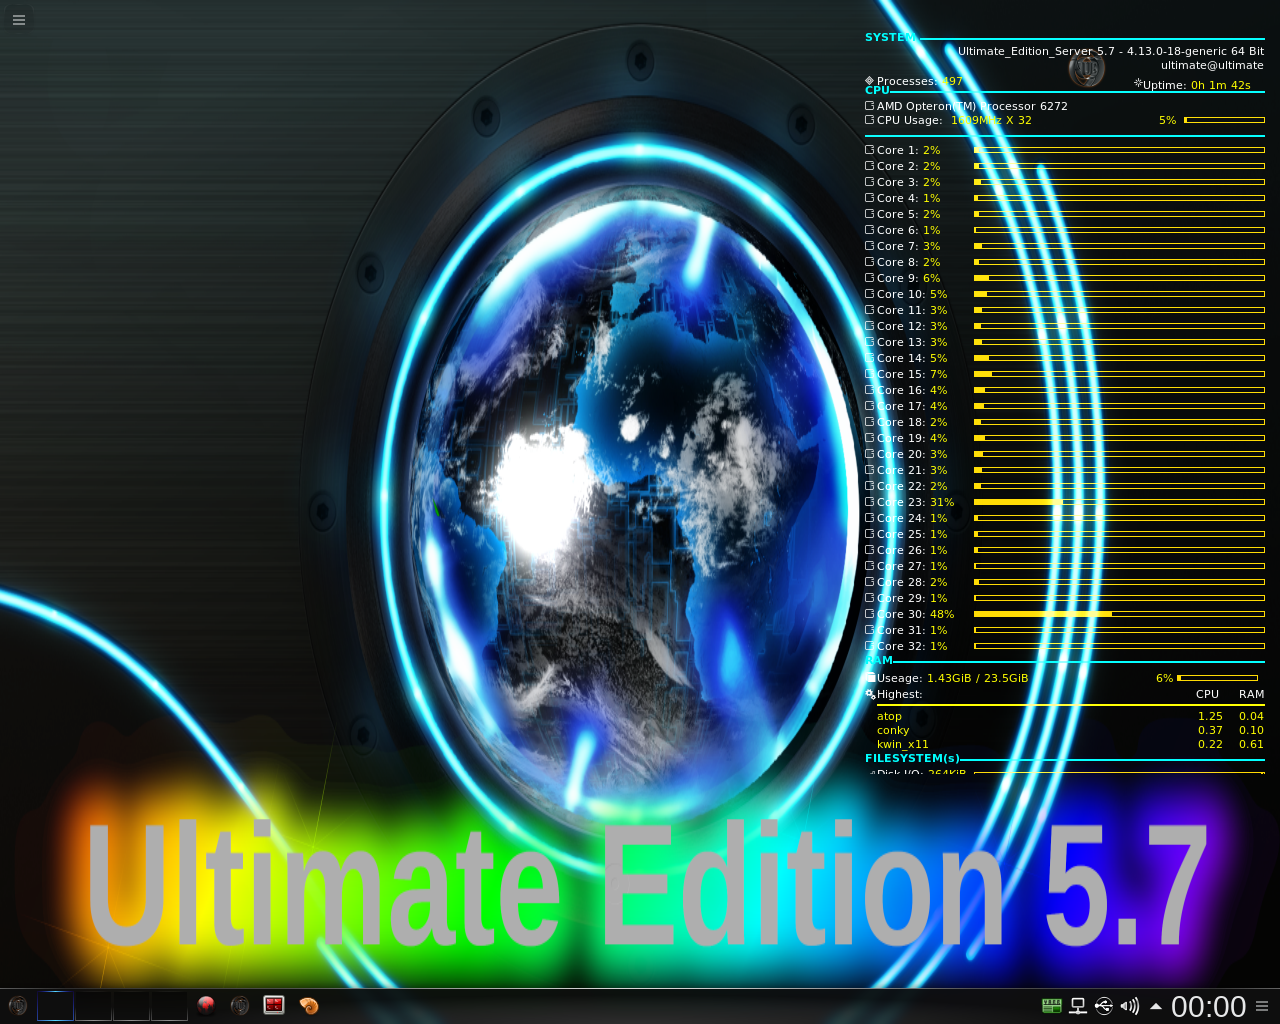 Ultimate Edition search results: 2 4